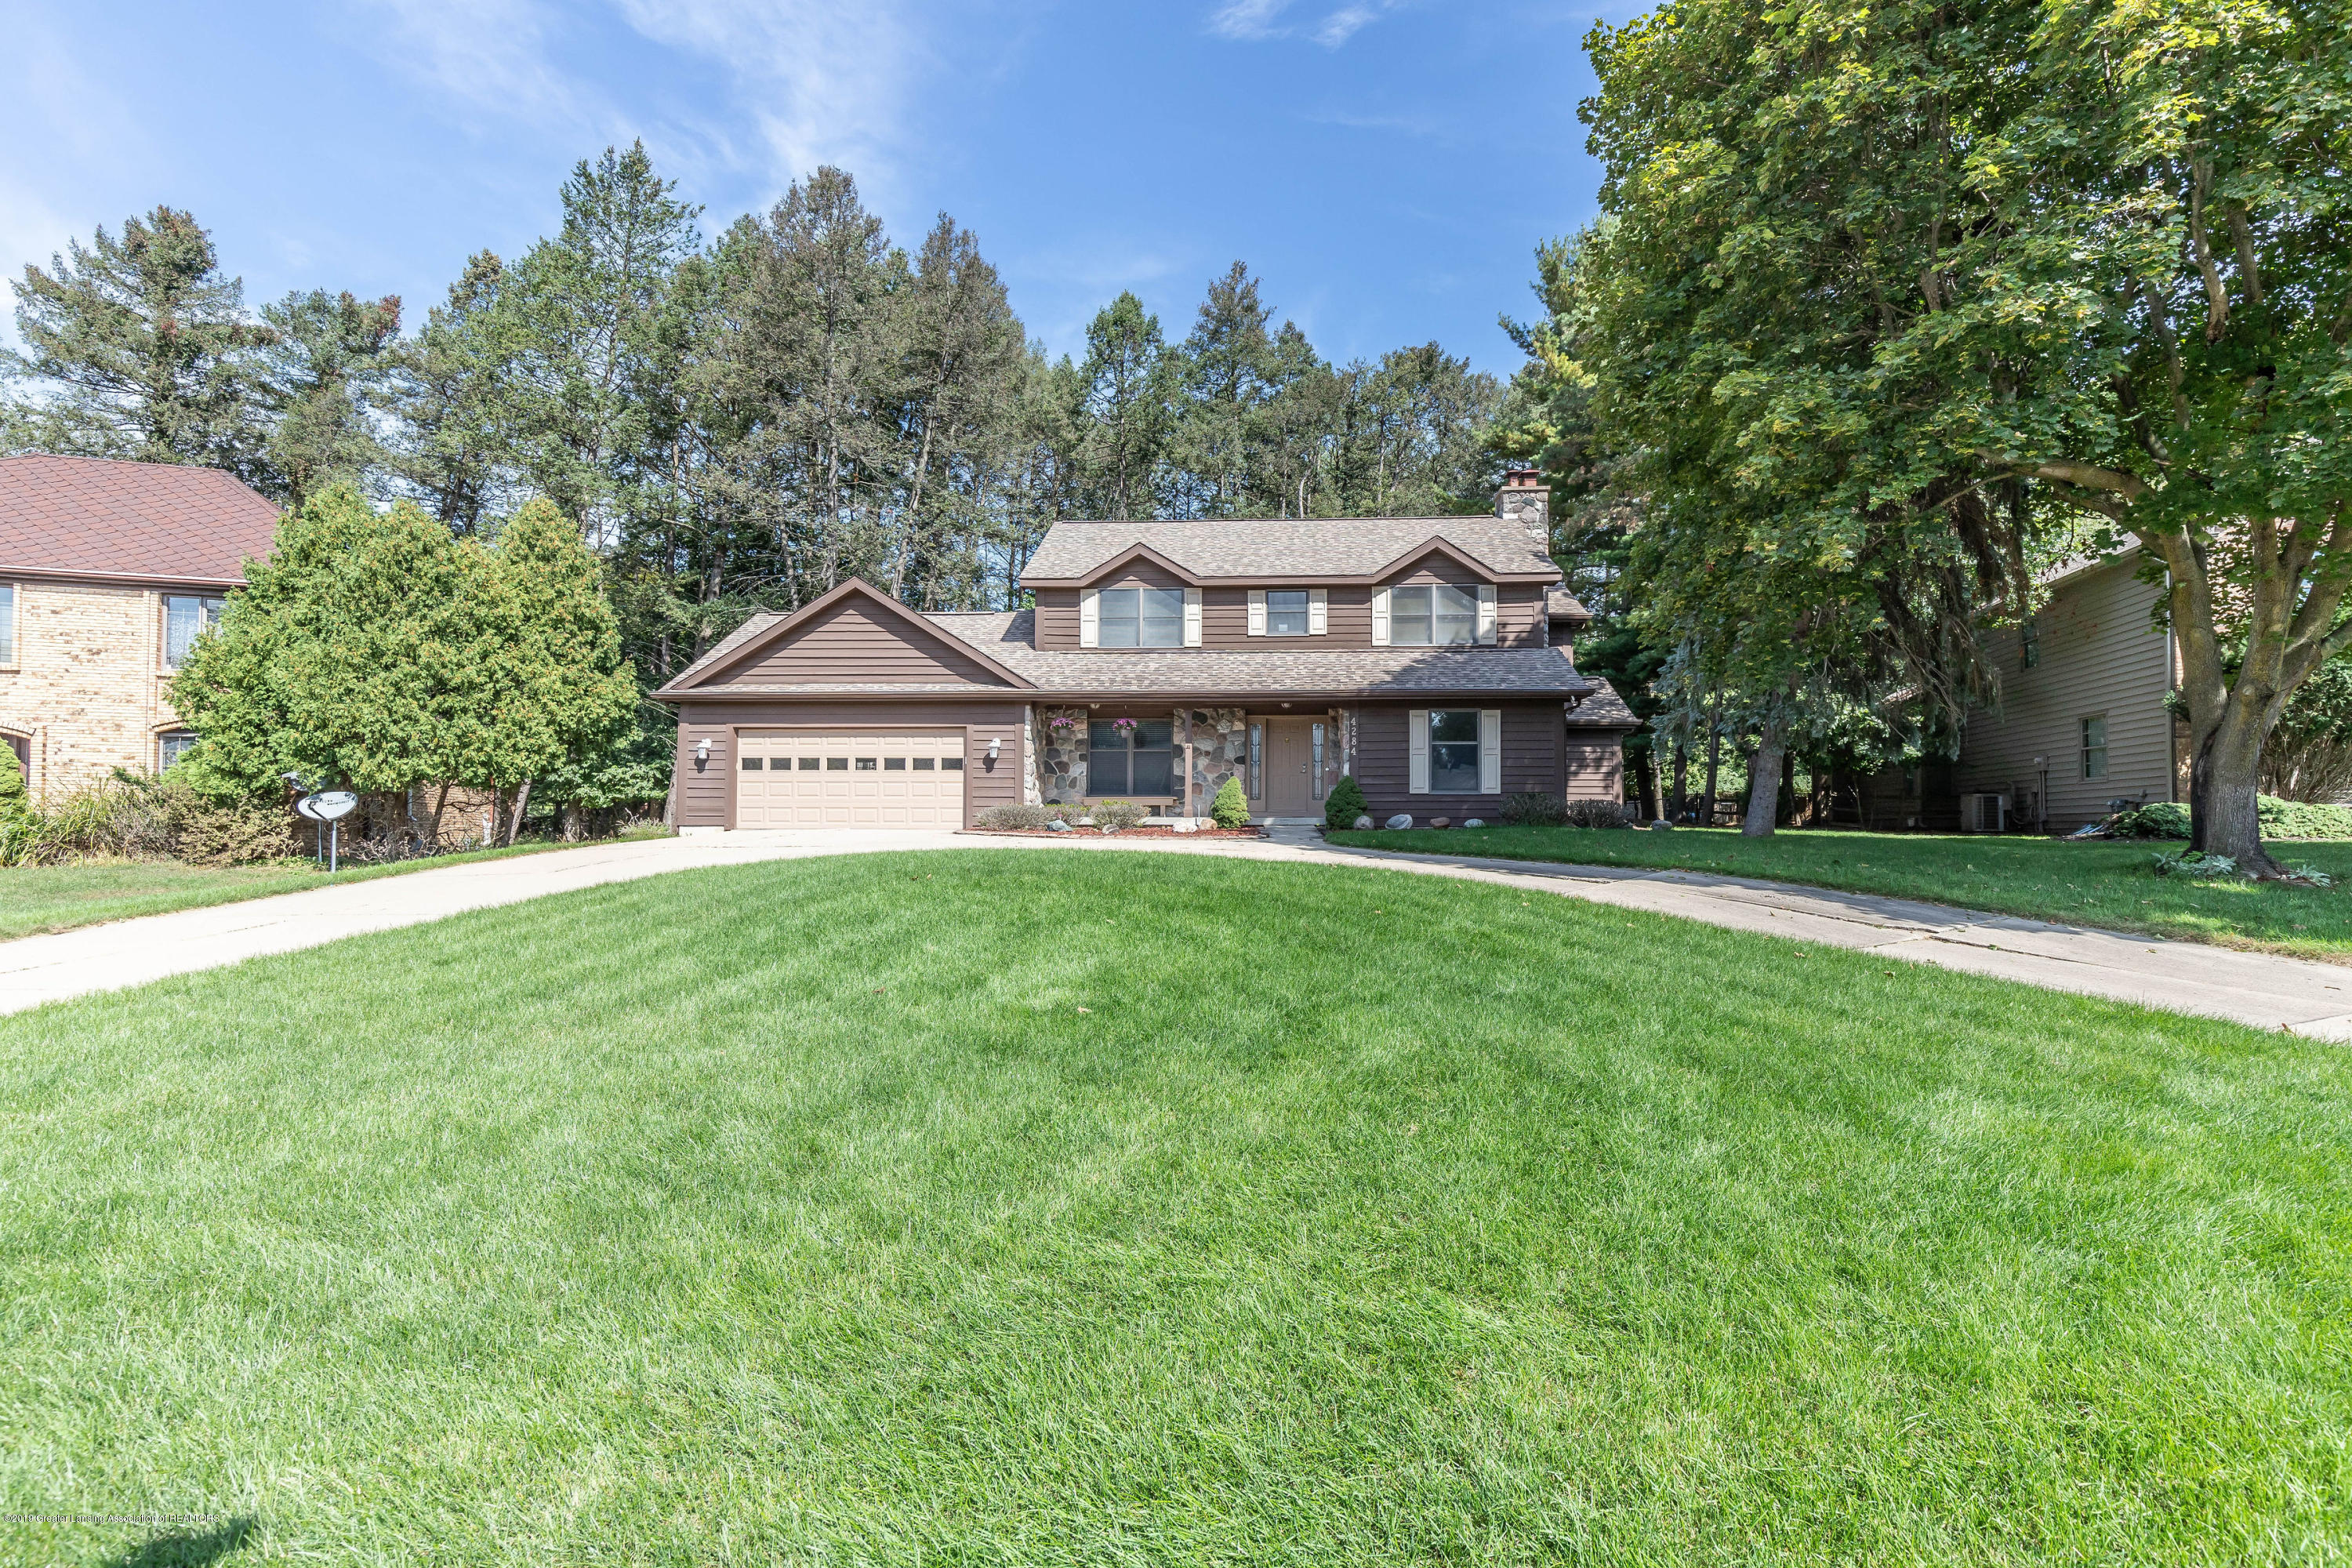 4284 Conifer Cir - coniferfront(1of1) - 1